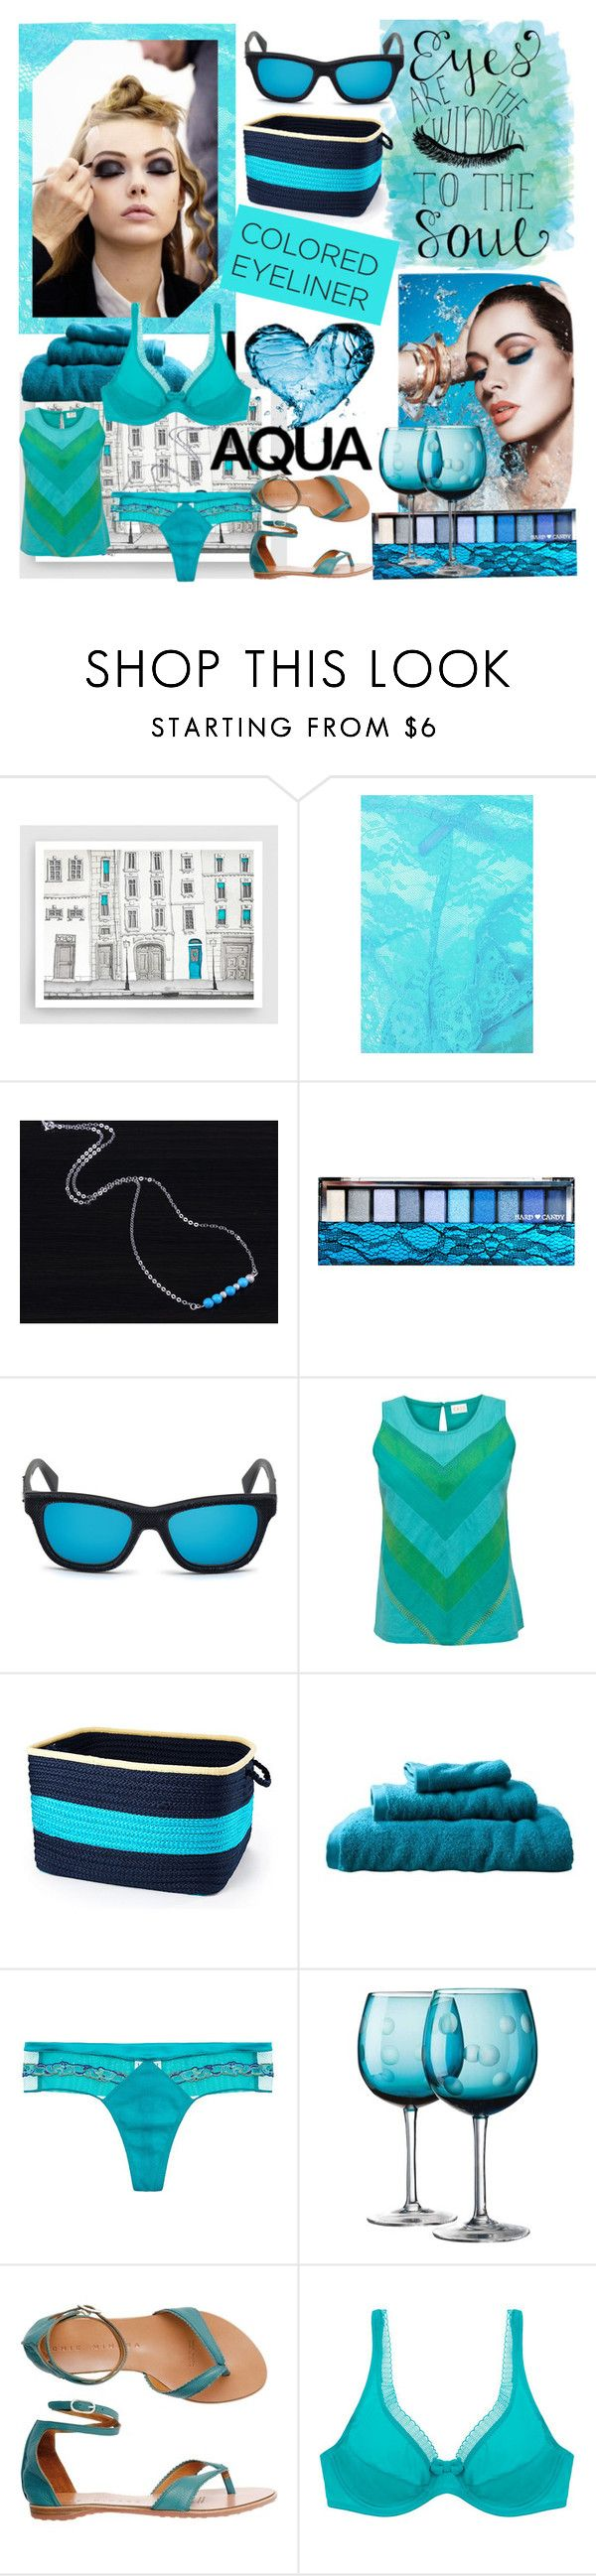 """""""Turquoise Eyeliner"""" by din-sesantadue ❤ liked on Polyvore featuring Topshop, MAKE UP FOR EVER, Hard Candy, Diesel, EAST, Colonial Mills, Room Essentials, La Perla, Home Essentials and Toast"""